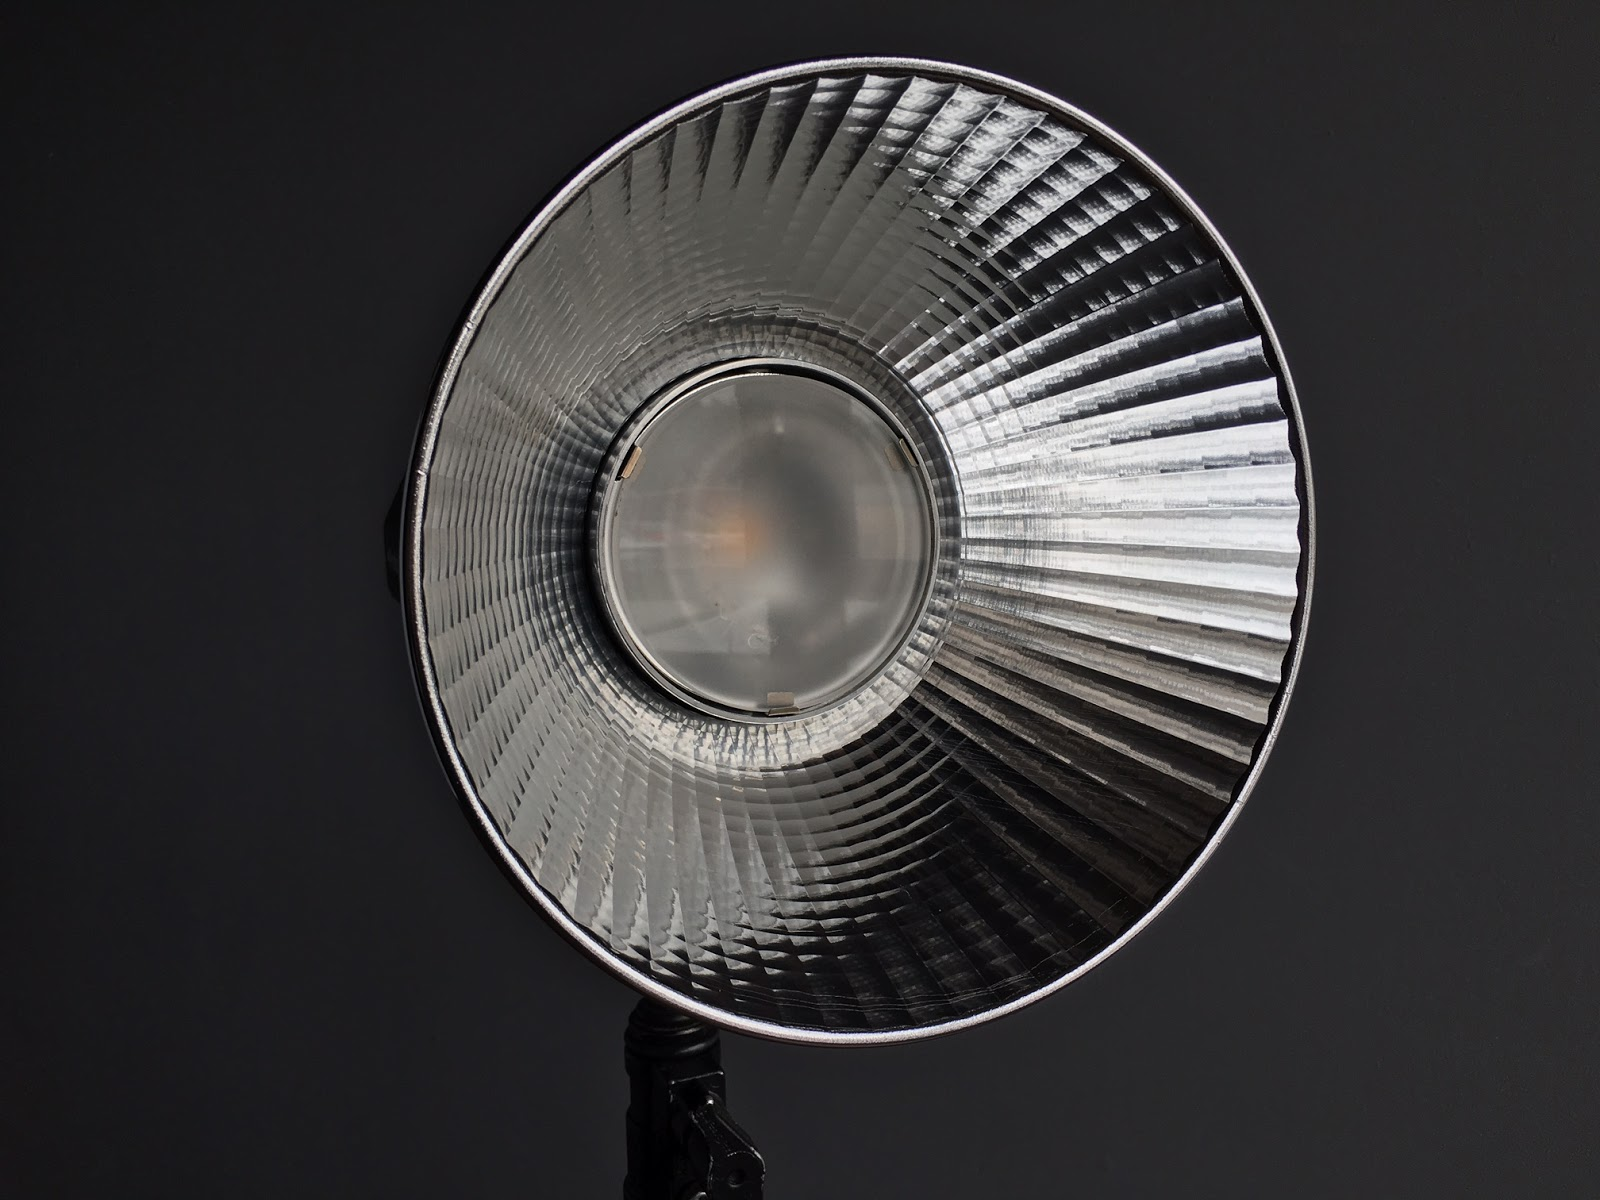 The OCF Magnum correctly focused at position 4 ,Note that the front protrudes into the reflector.This is the correct position.